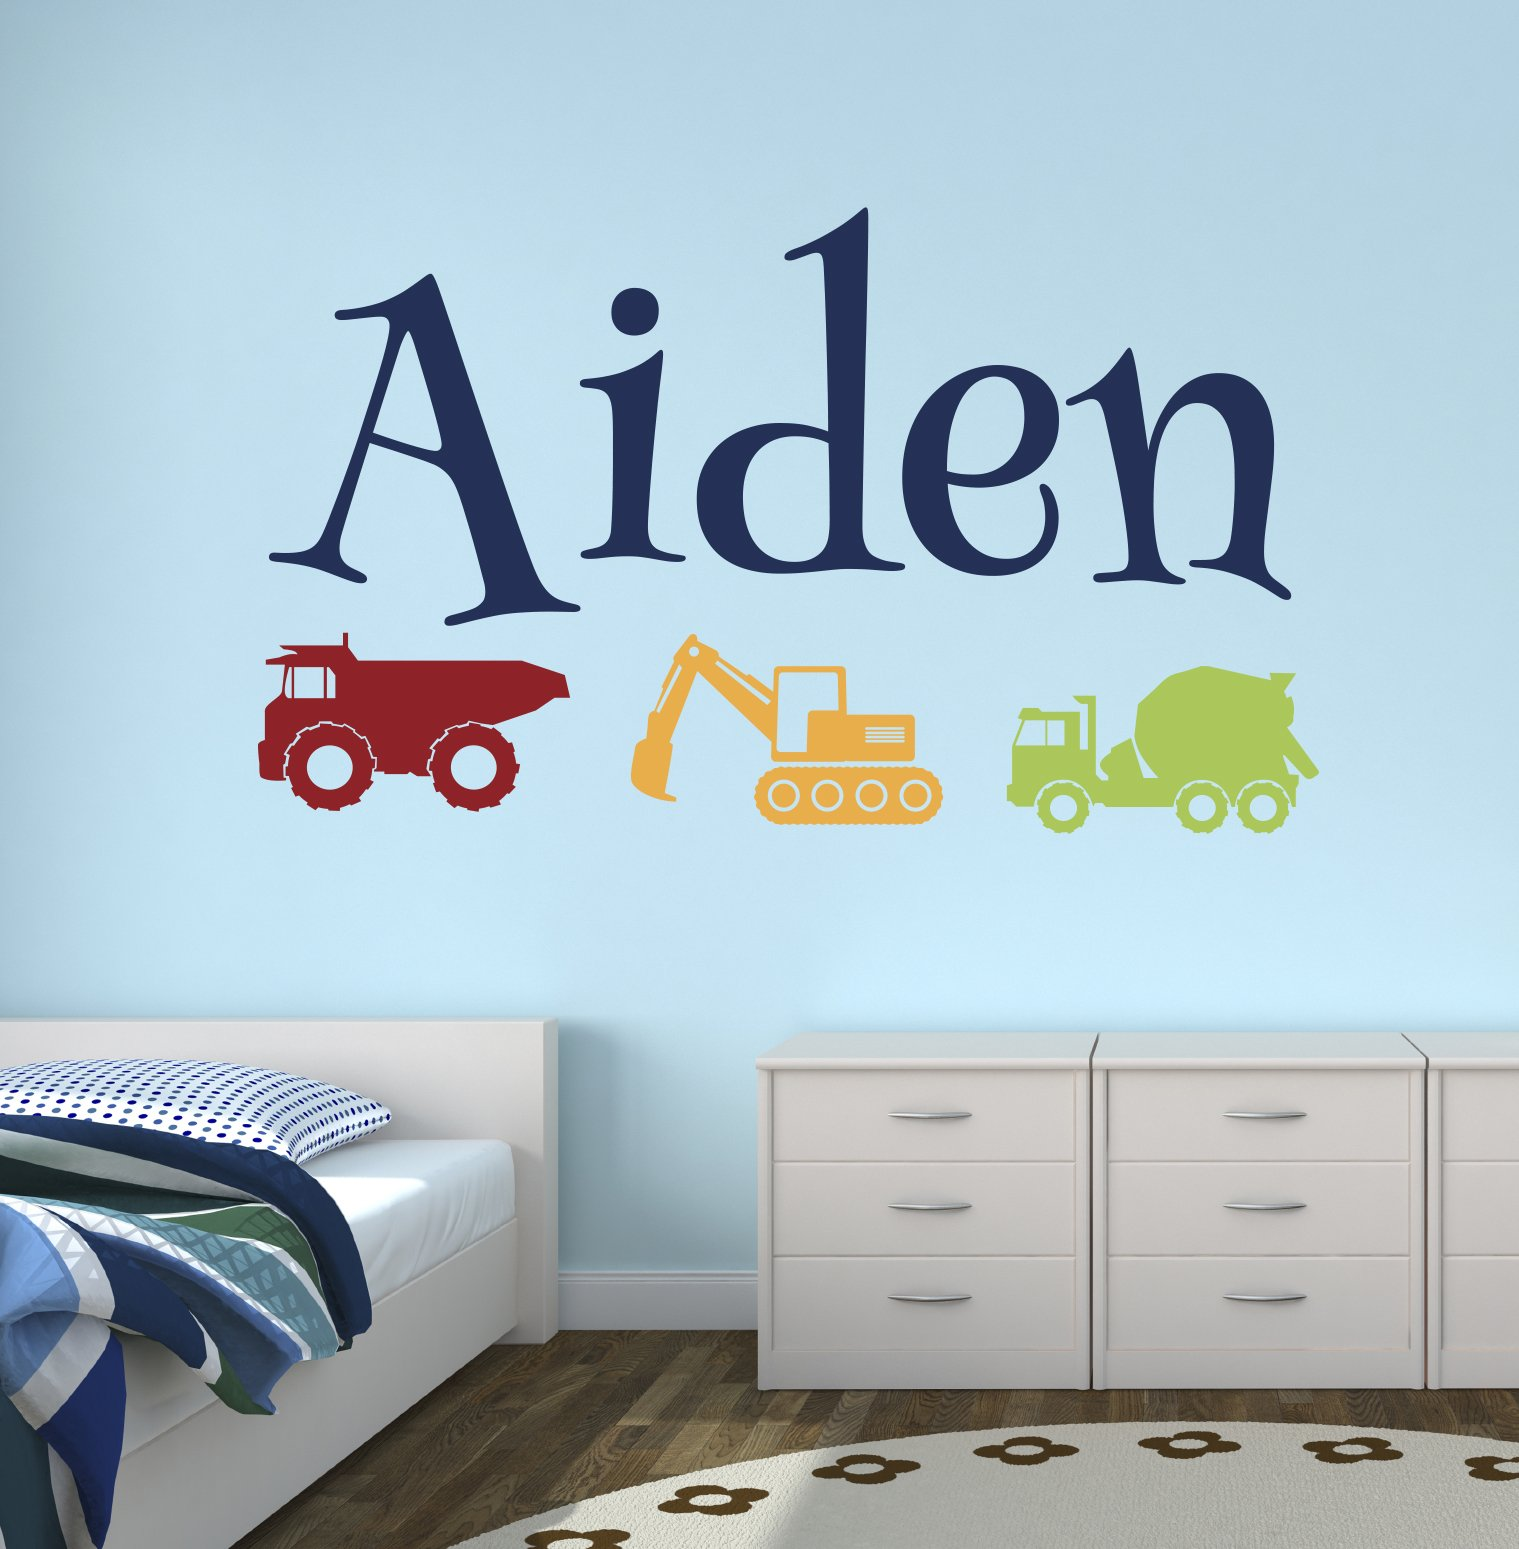 Custom Trucks Boy Name Wall Decal - Construction Wall Decals - Nursery Wall Decals - Trucks Decal - Baby Nursery Decor (40Wx24H) by Lovely Decals World LLC